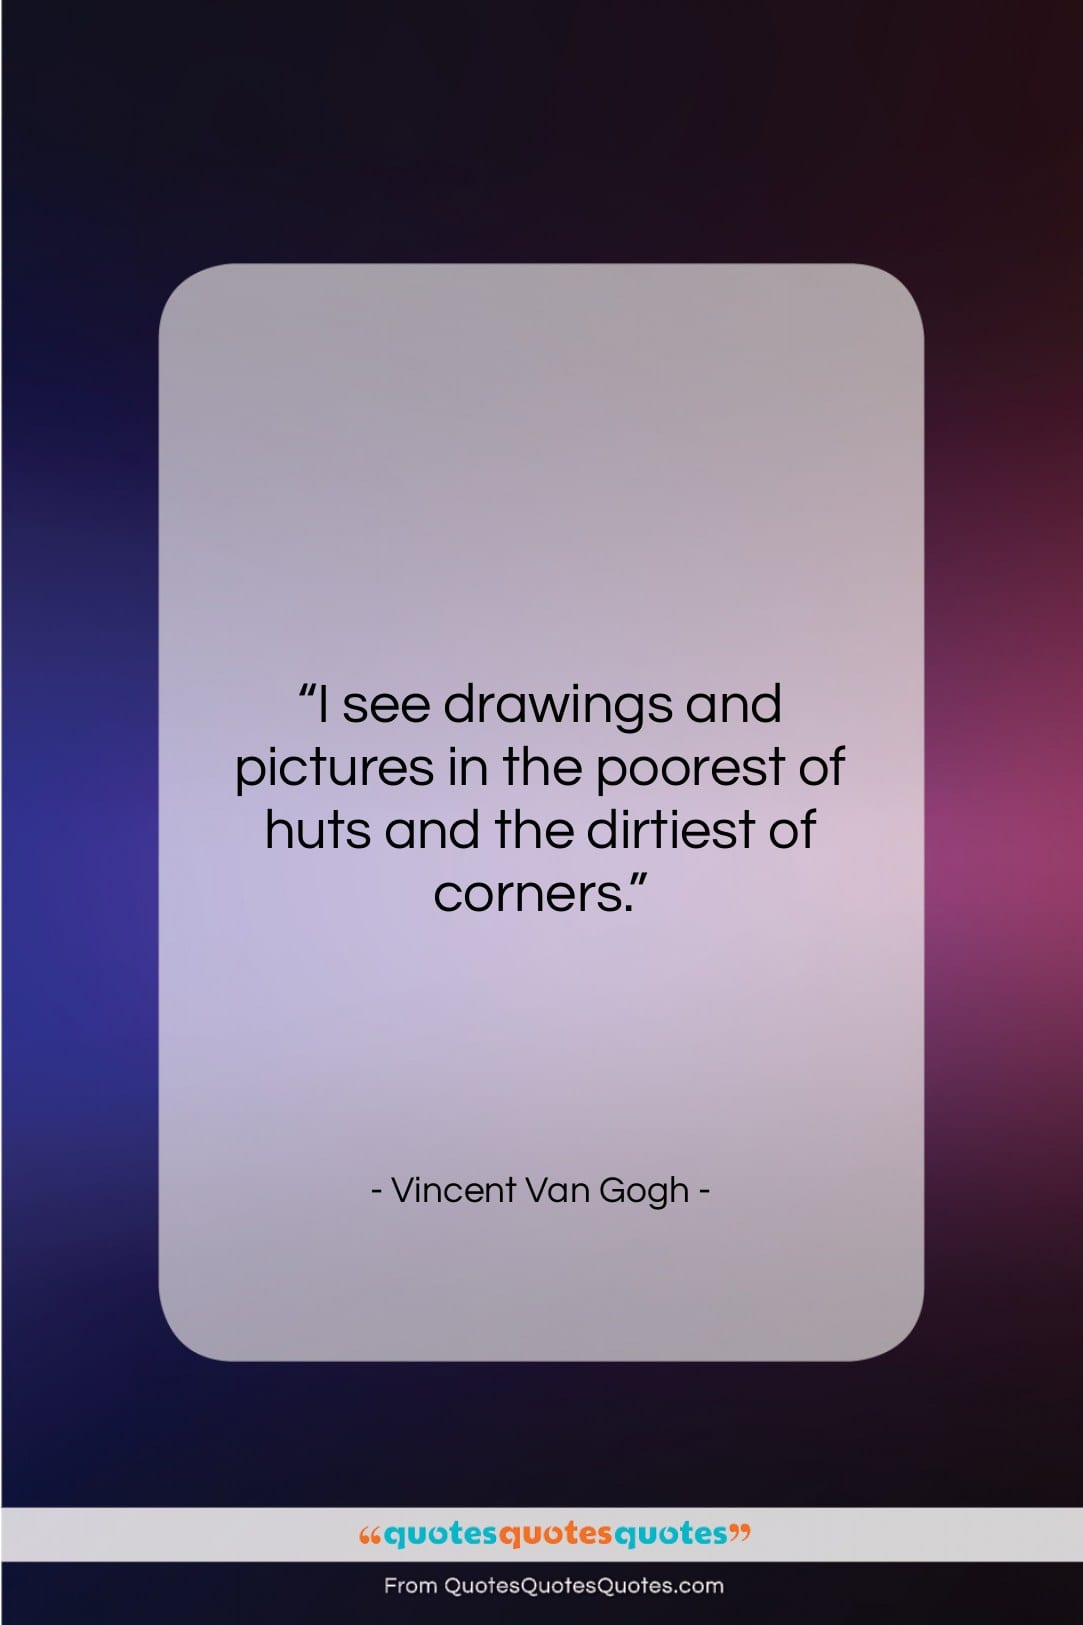 """Vincent Van Gogh quote: """"I see drawings and pictures in the…""""- at QuotesQuotesQuotes.com"""